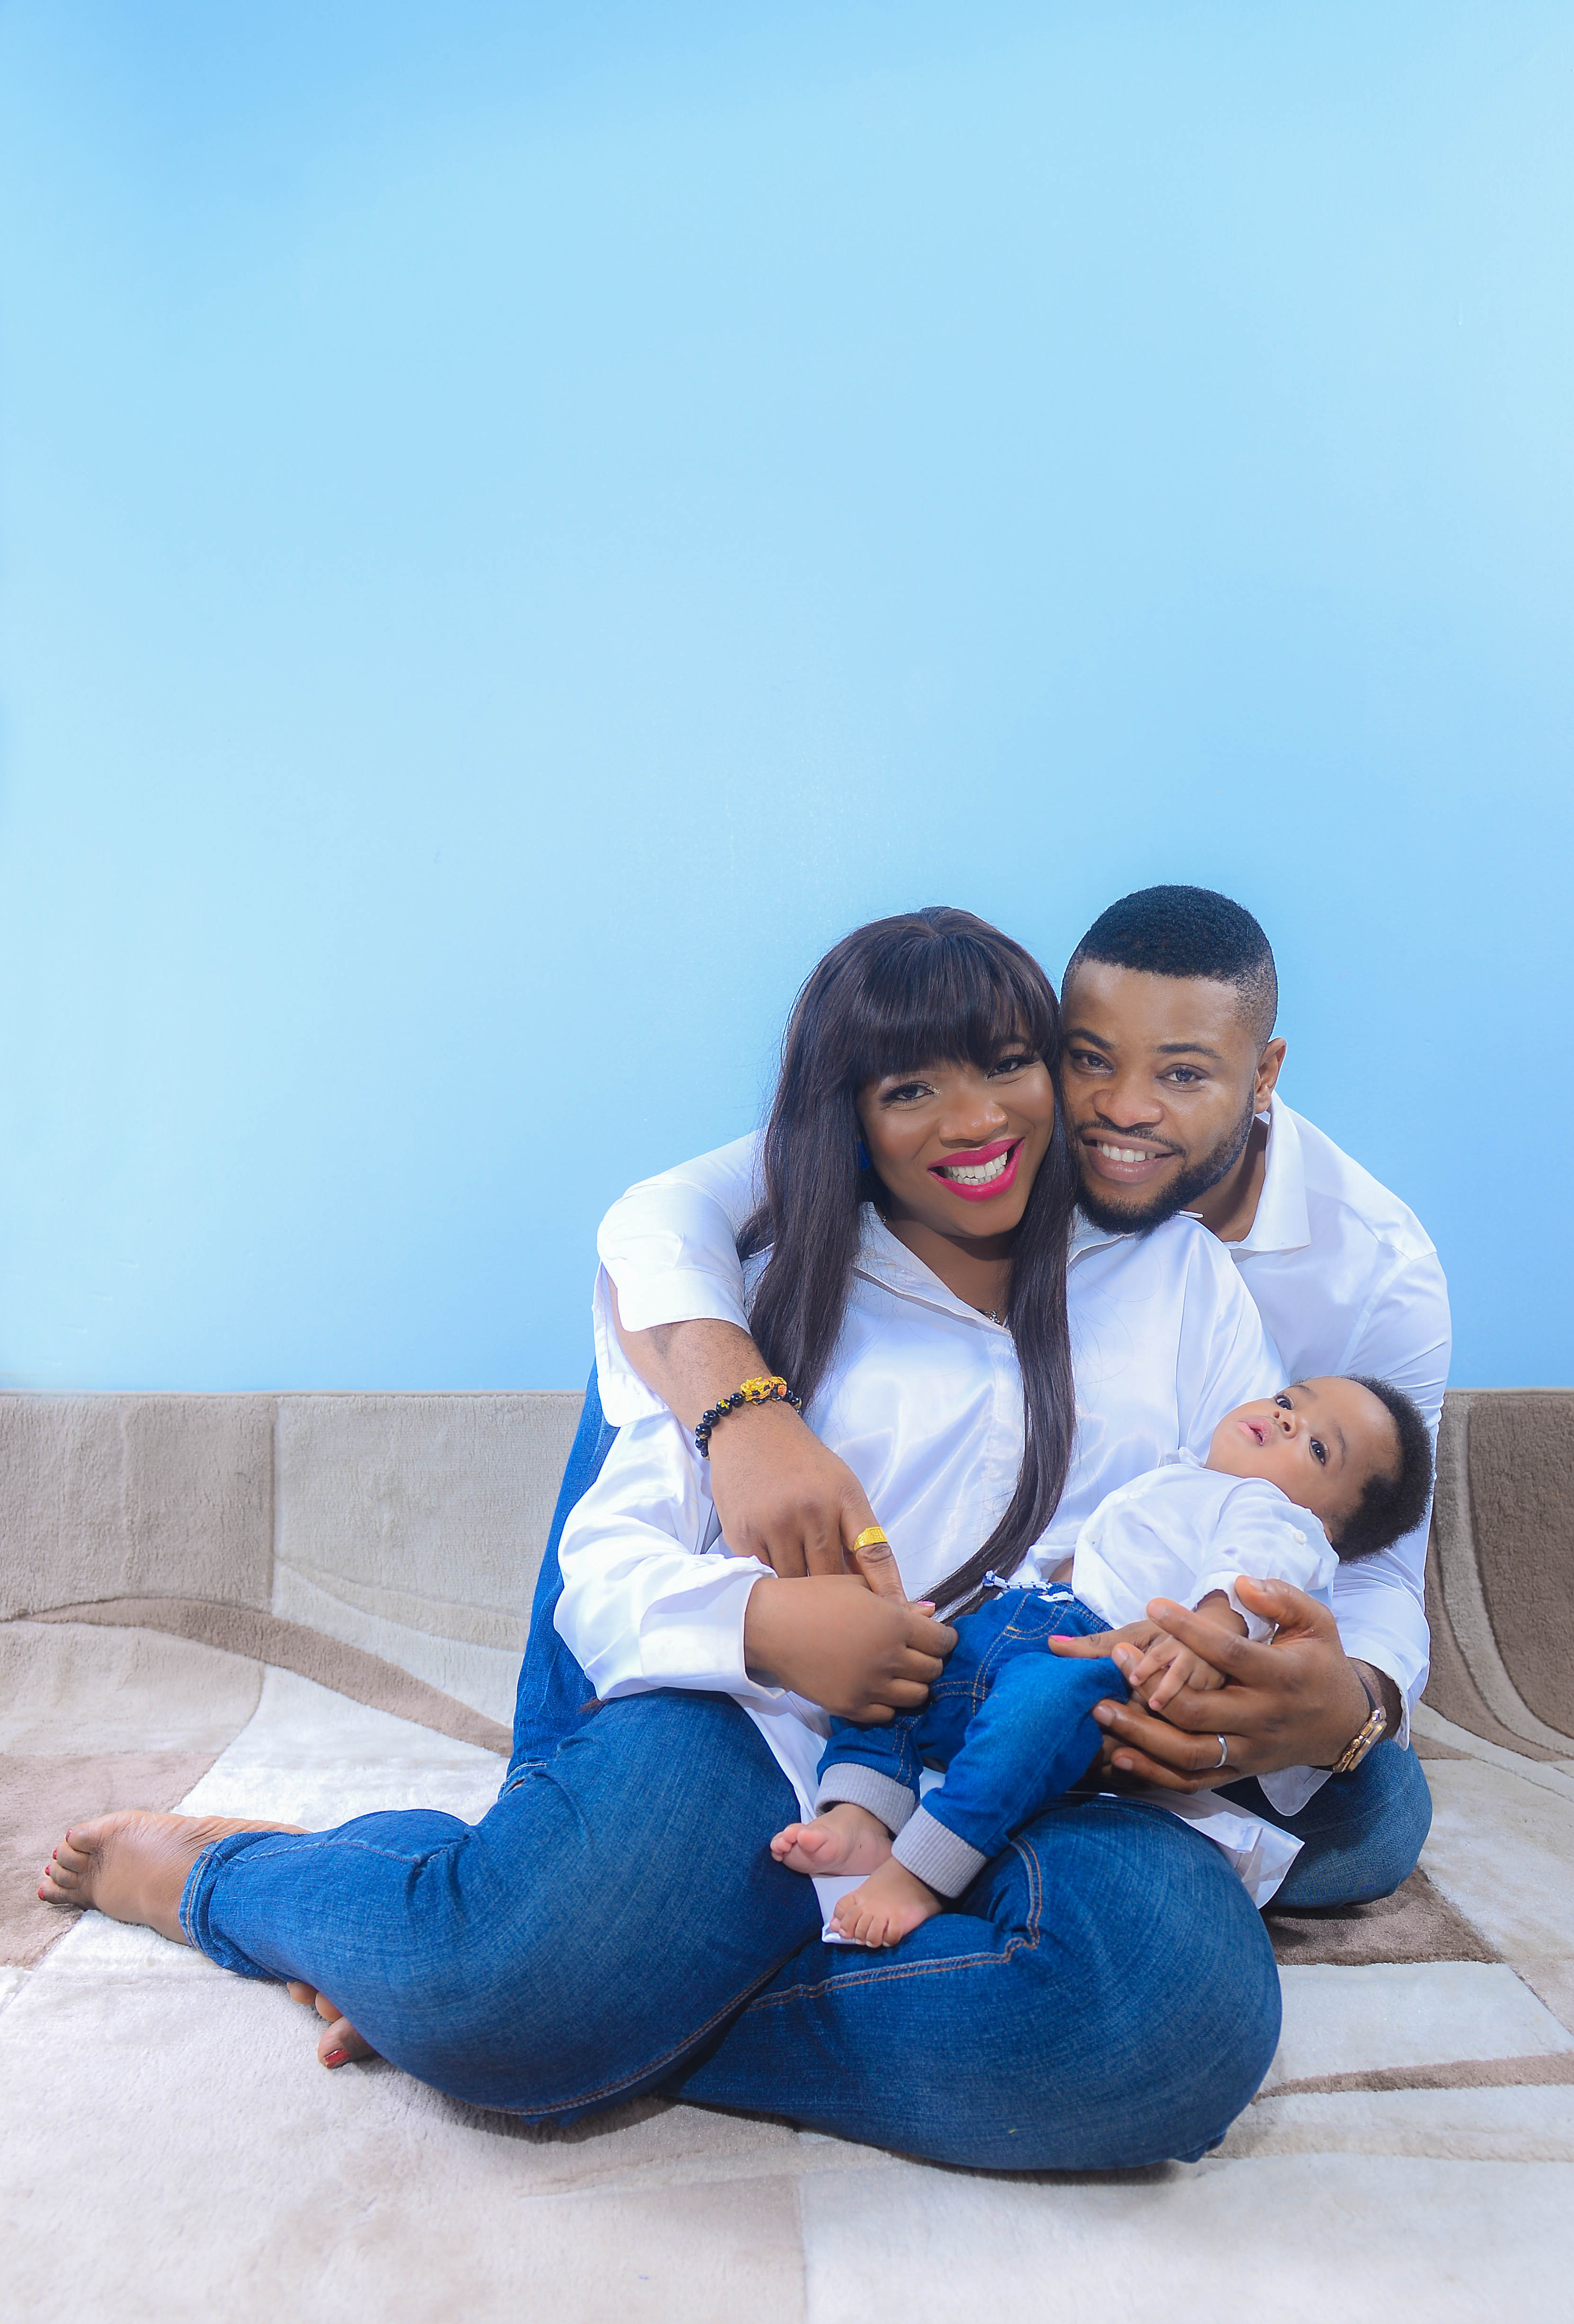 Event planner, Sandra Ikeji Samuel and hubby, Arinze, celebrate 1st wedding anniversary with lovely family photos